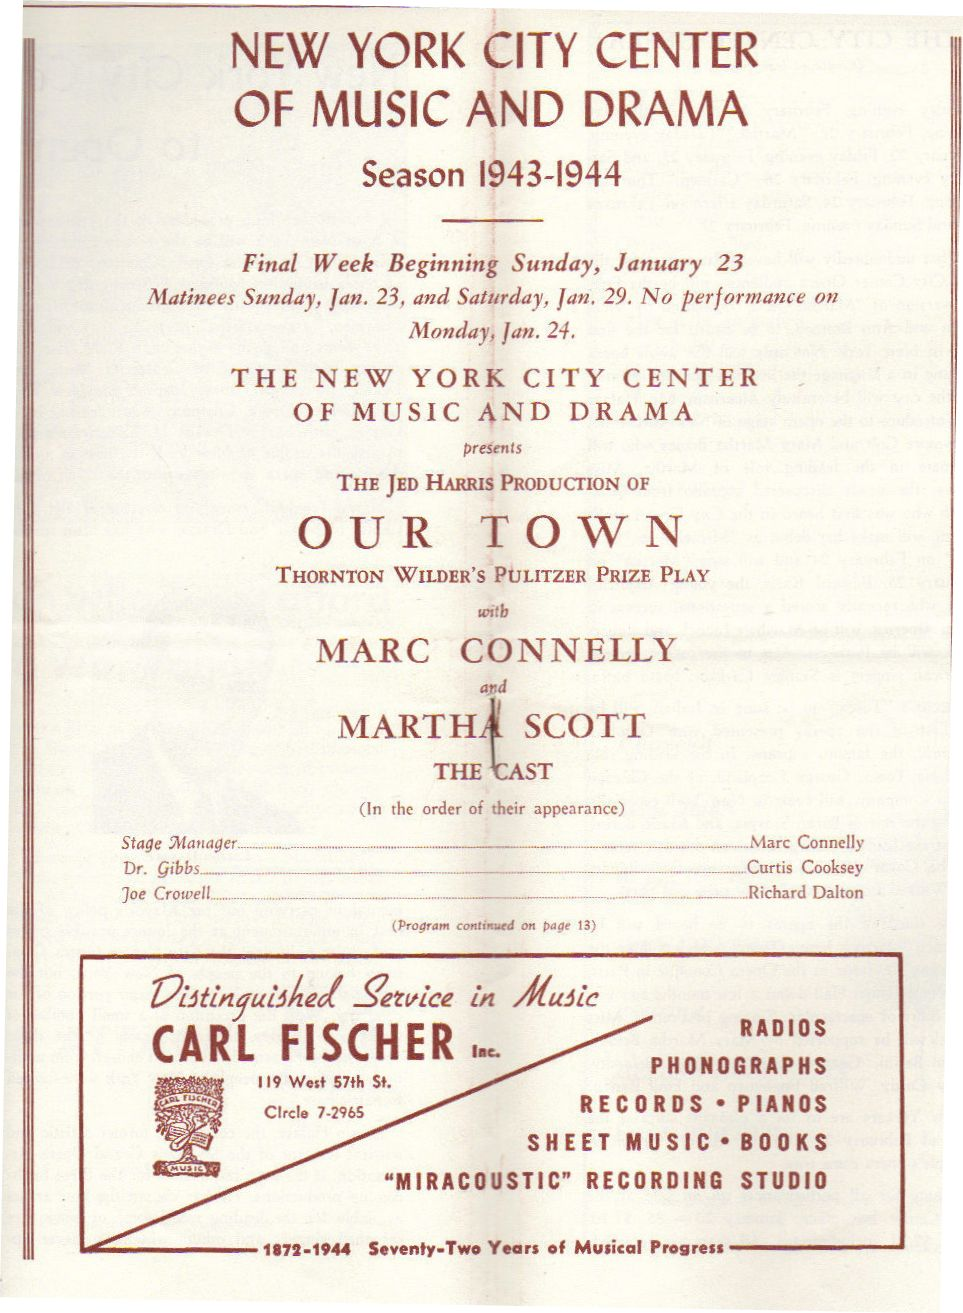 1944-revival-at-new-yorks-city-center_4313760945_o.jpg